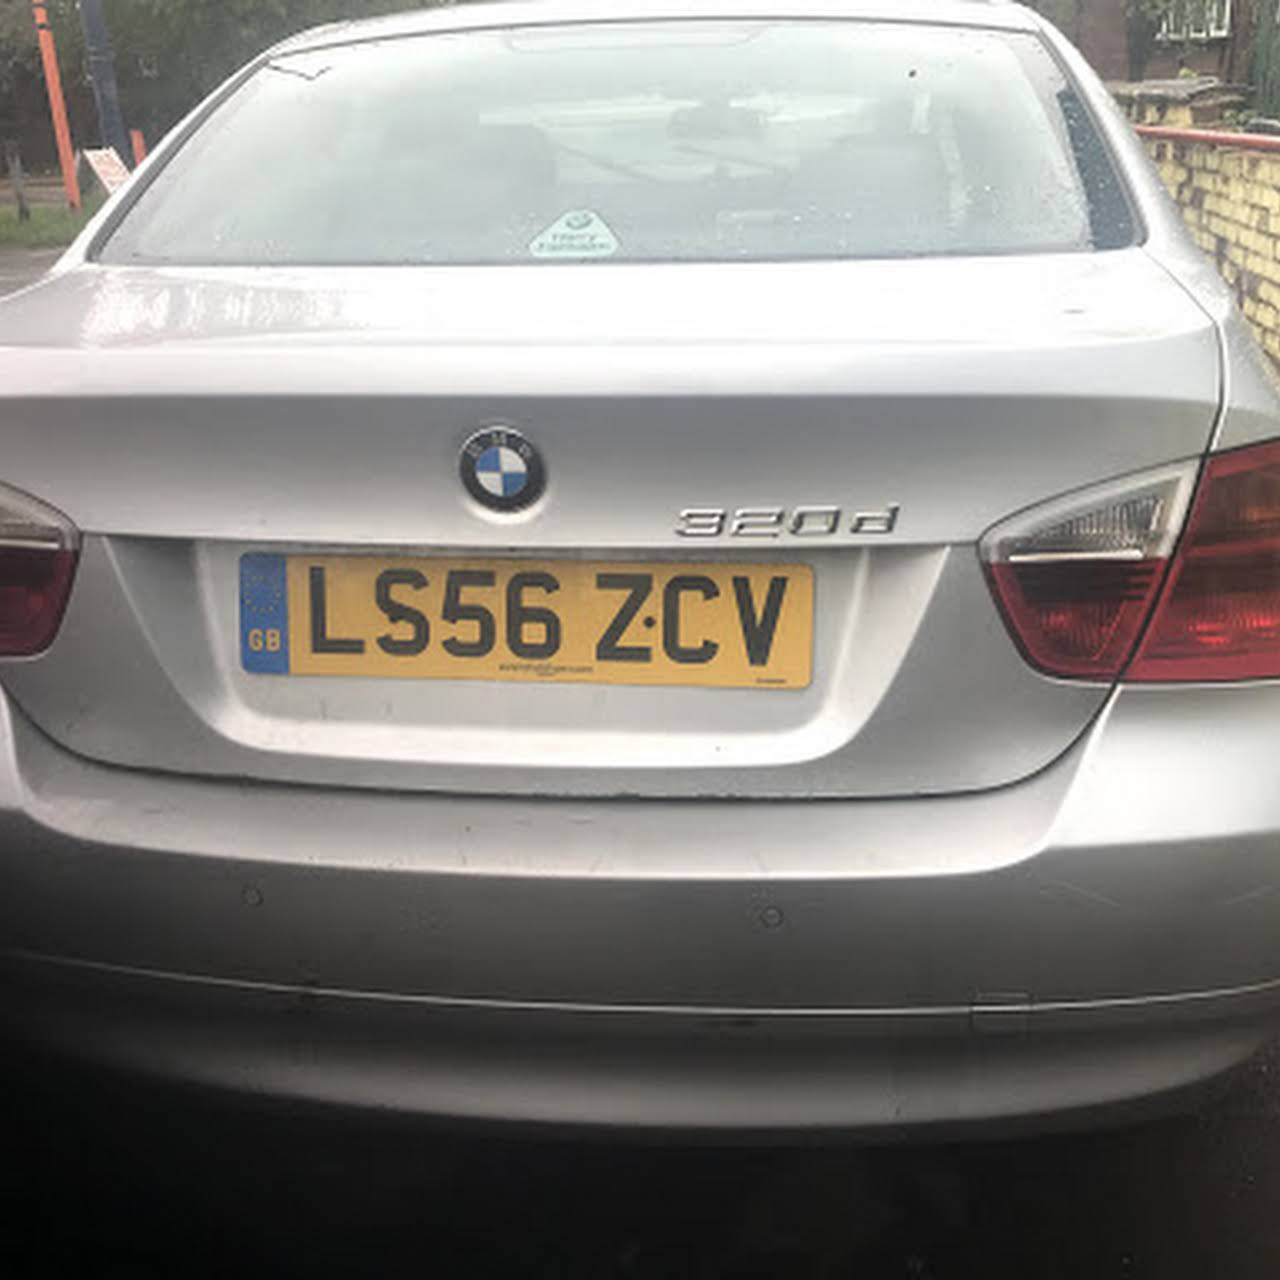 Scrap my car Salford Manchester today cash paid - Scrap car buyer ...